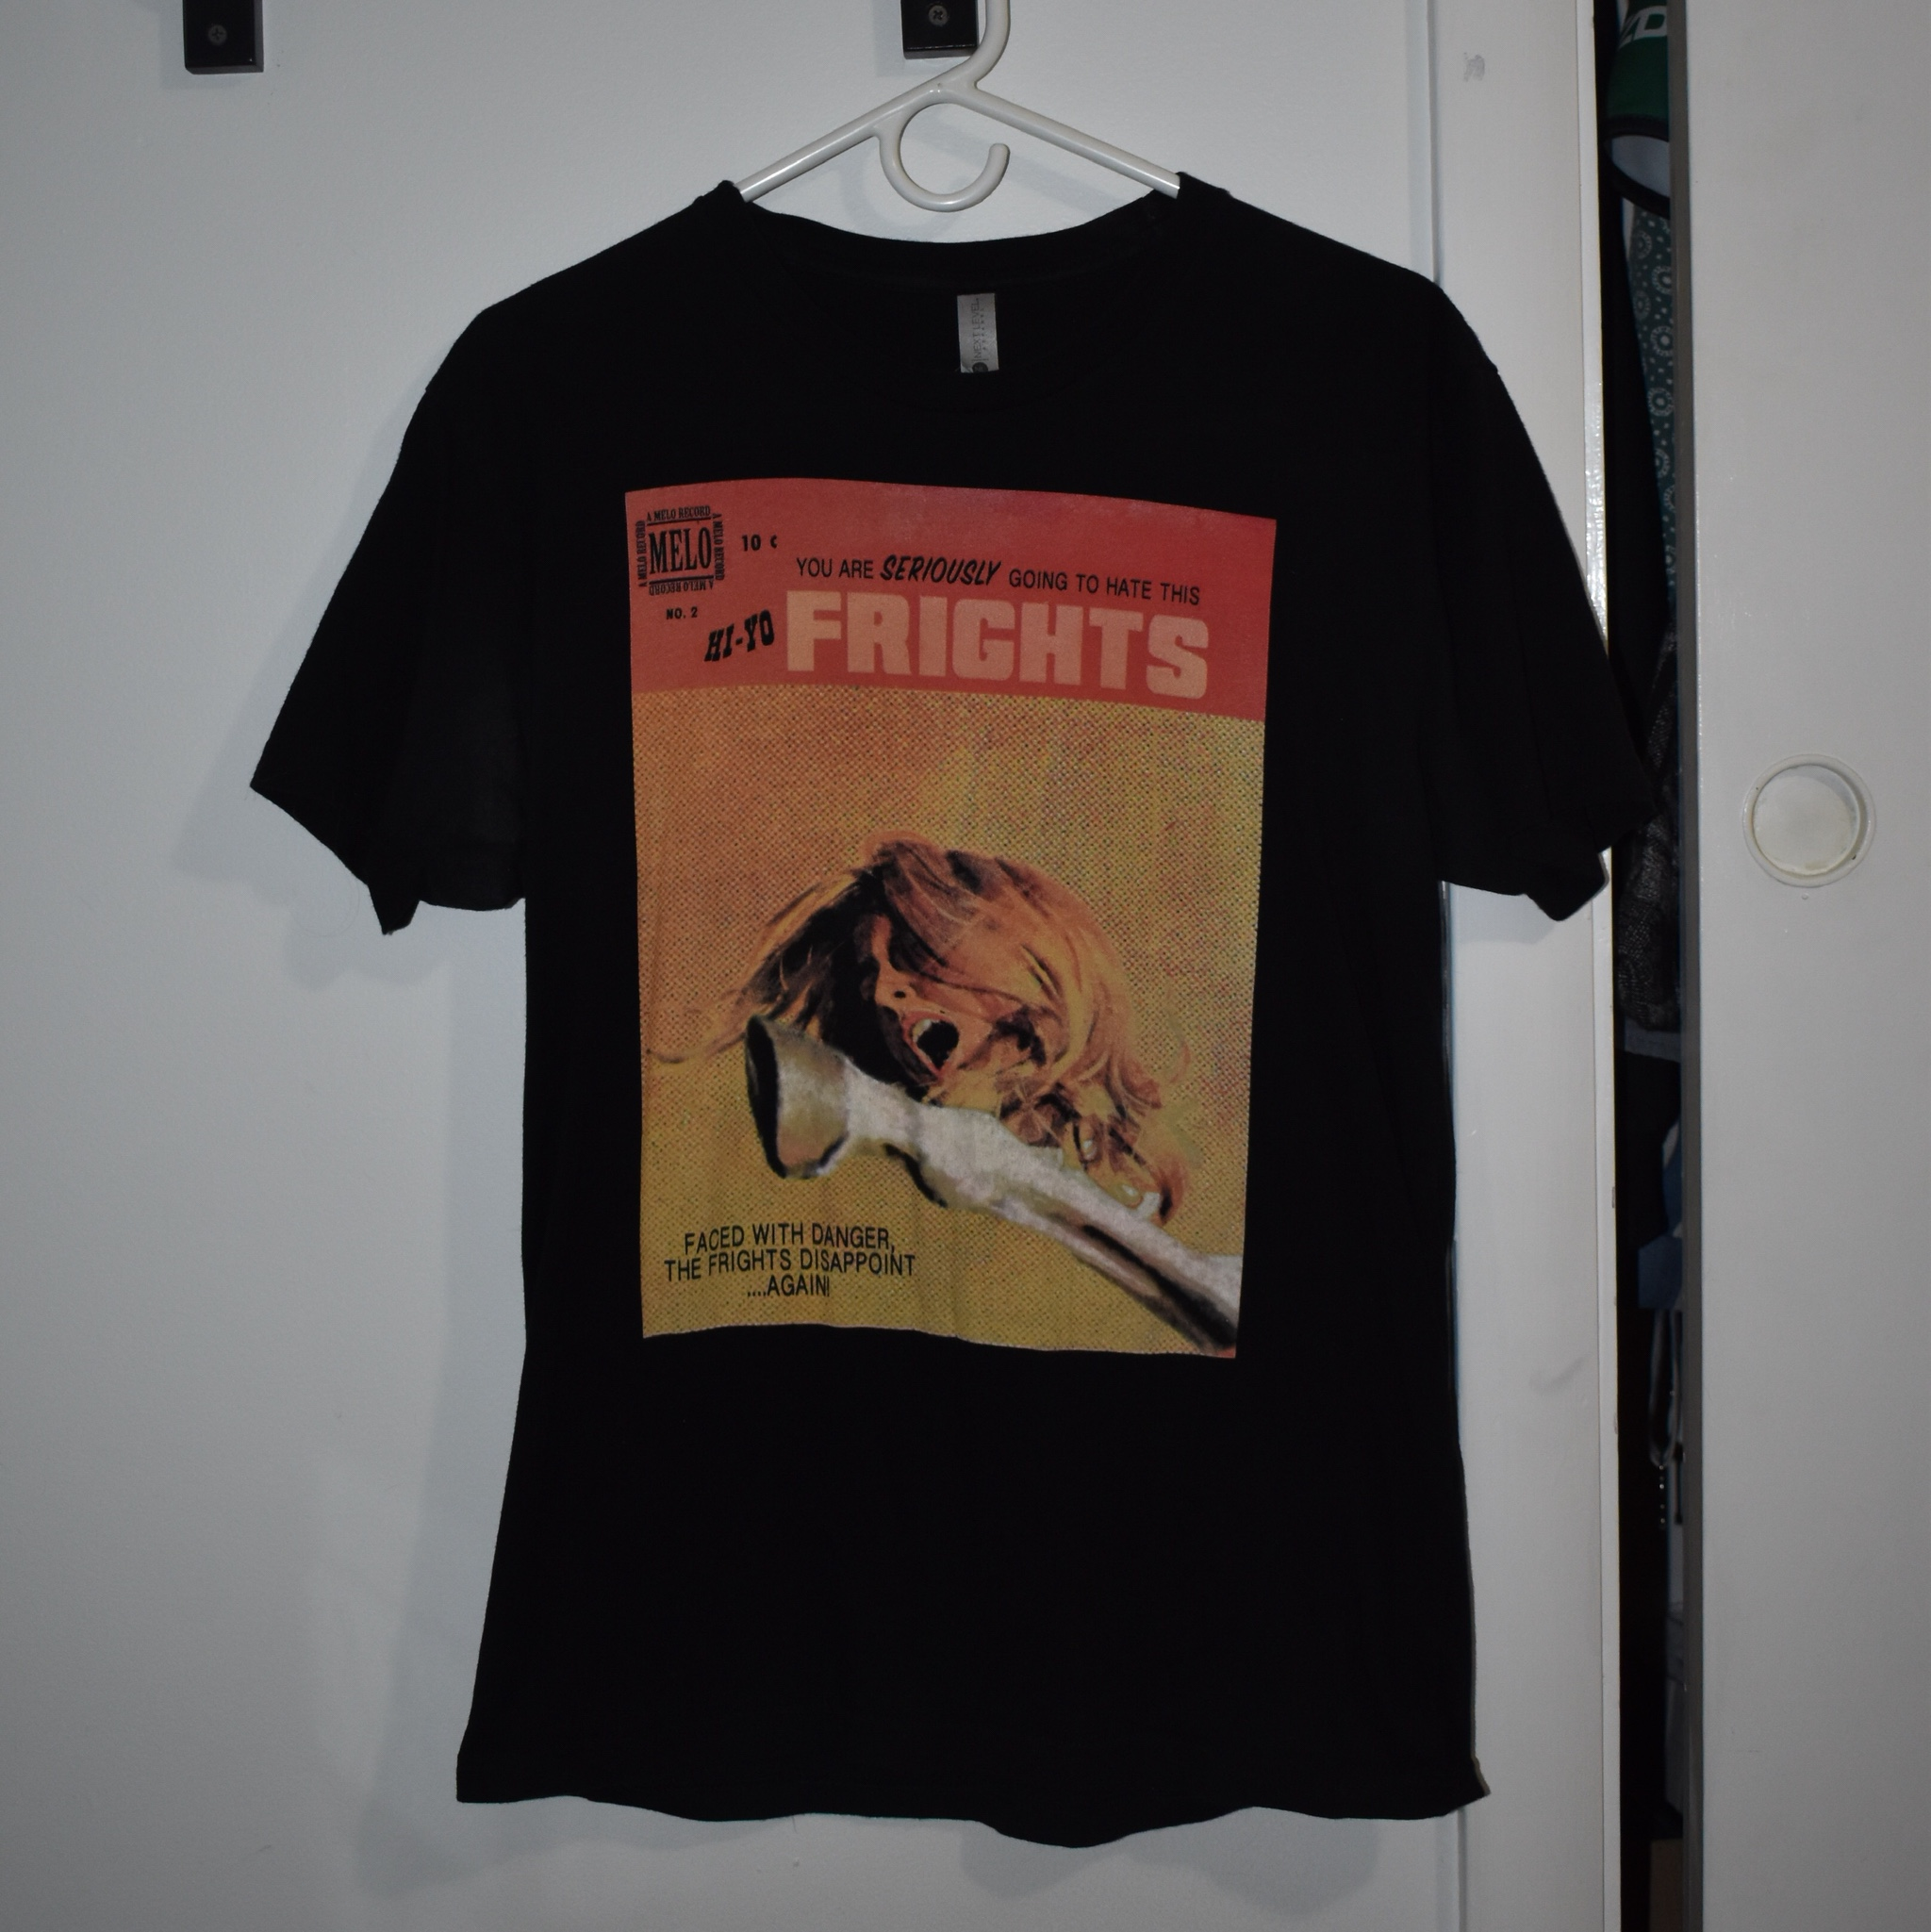 The Frights T Shirt Bought On Their You Are Going Depop